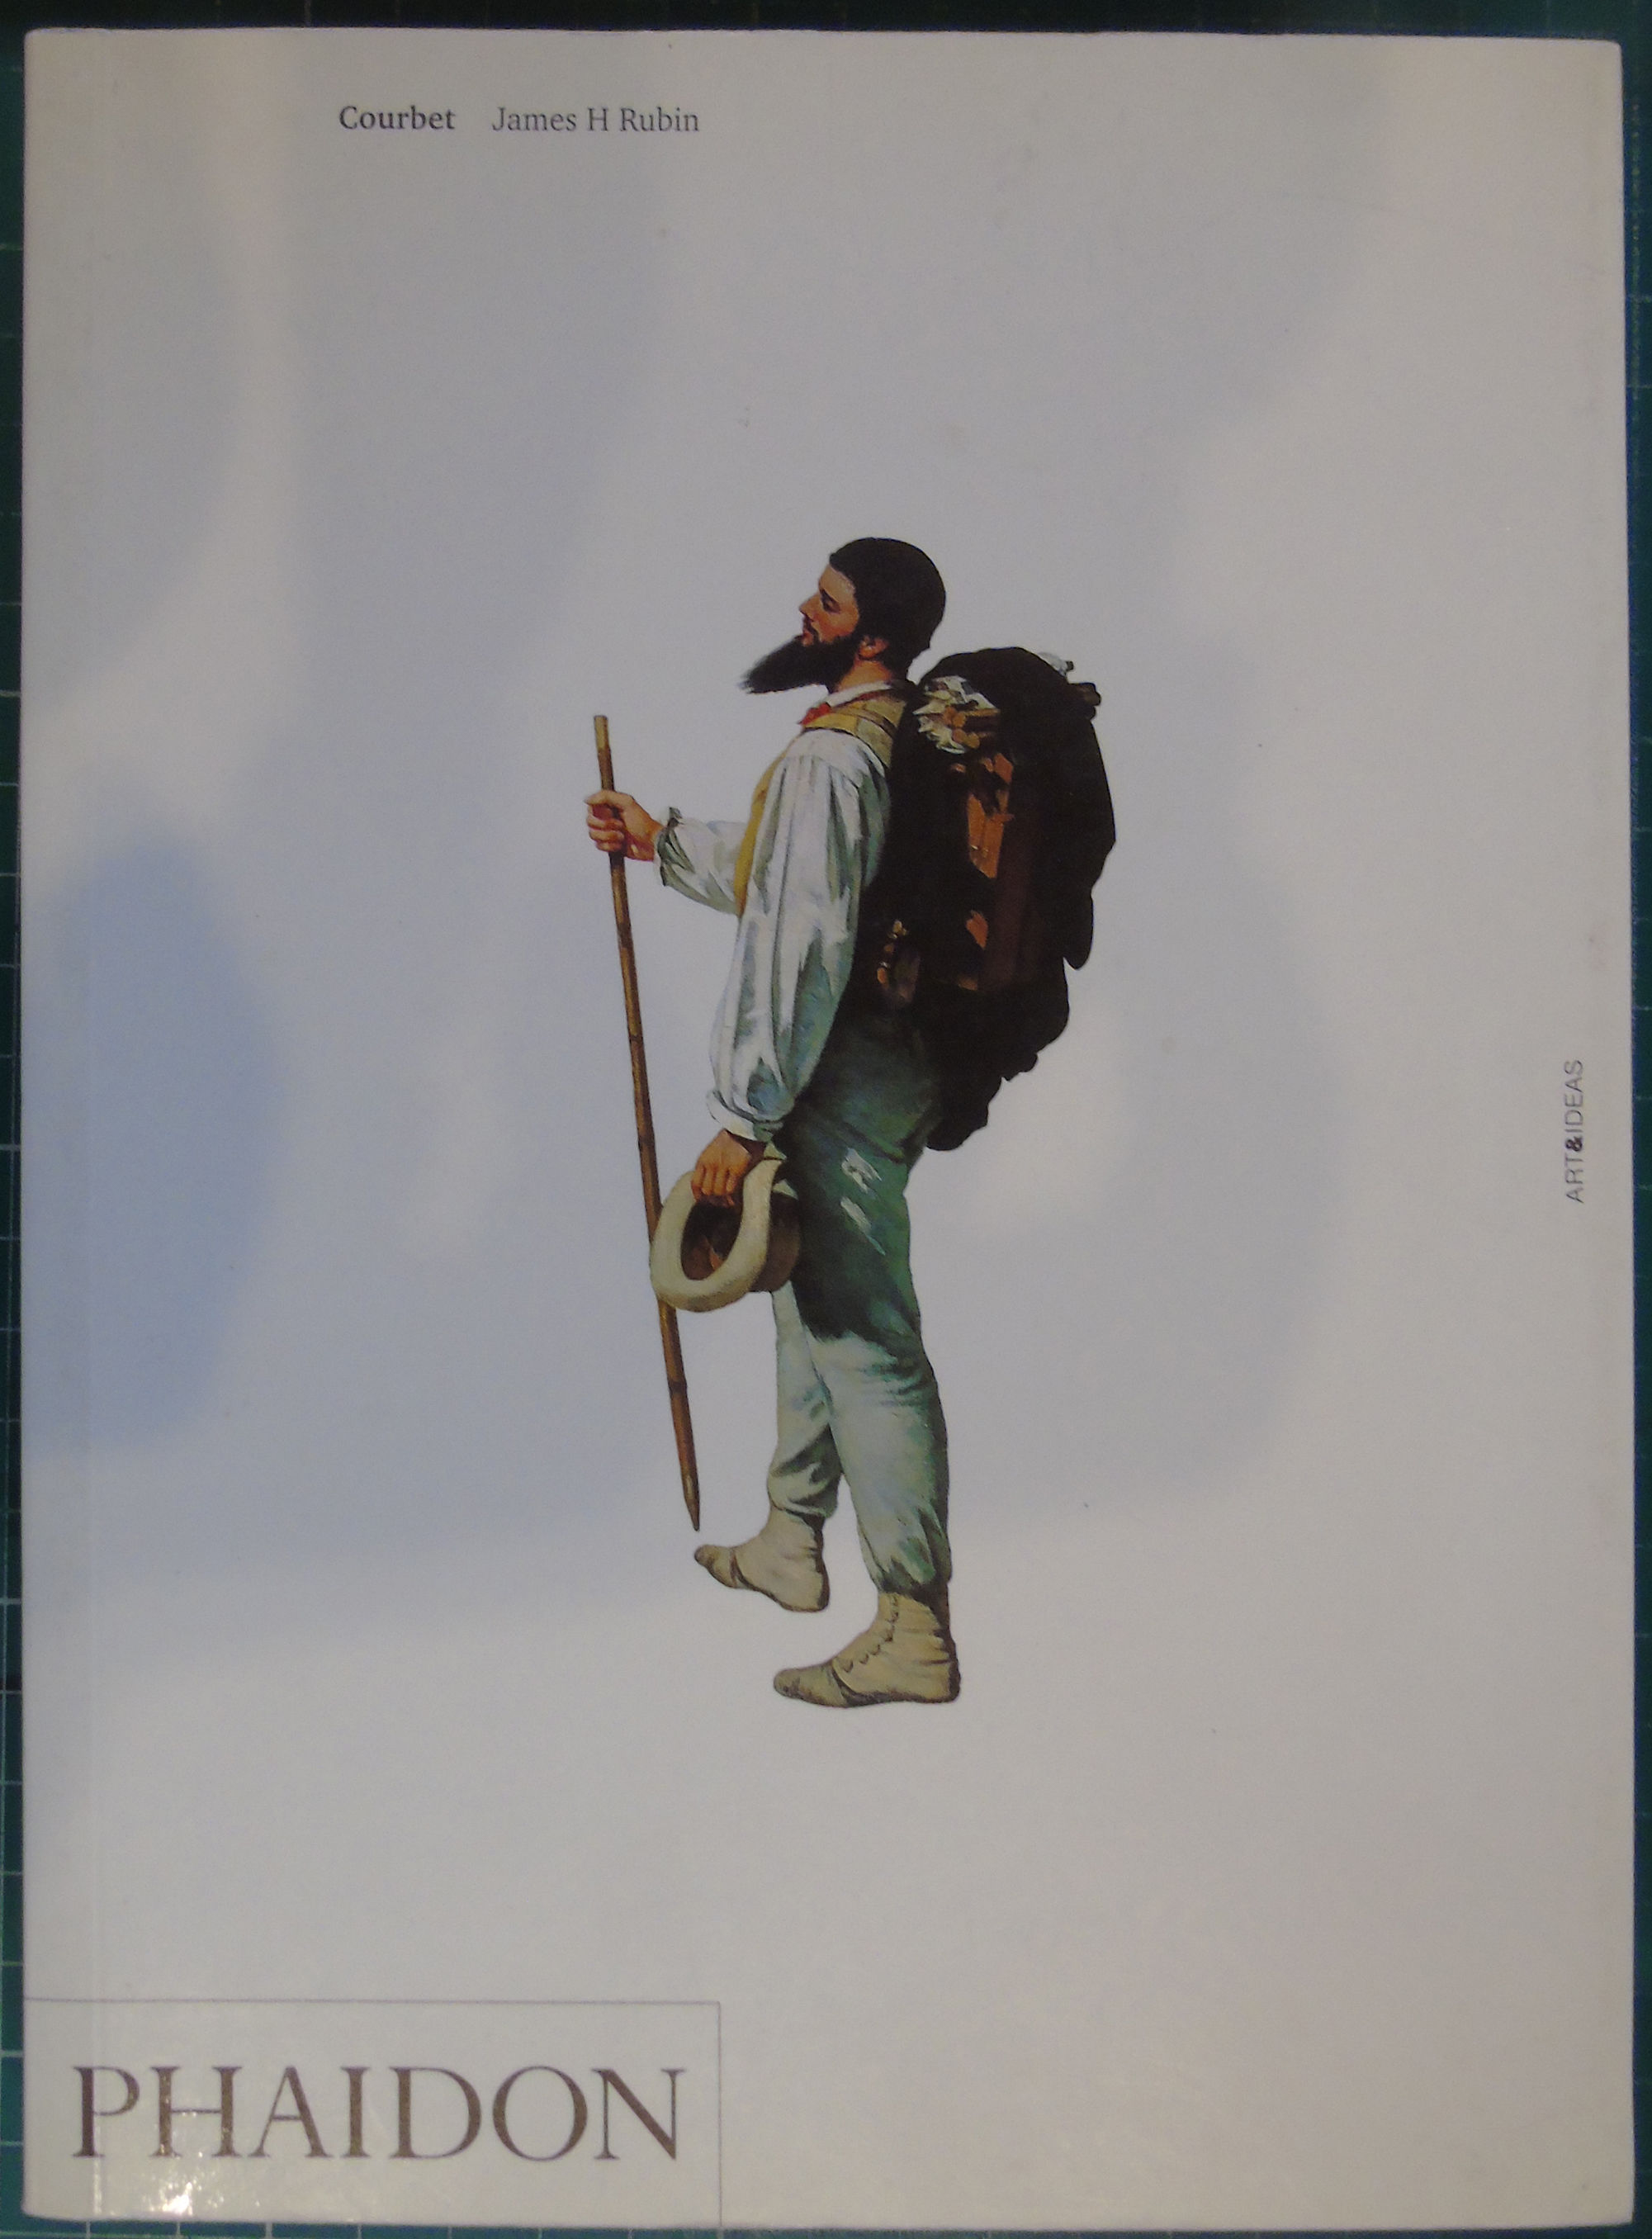 Cover image of Courbet